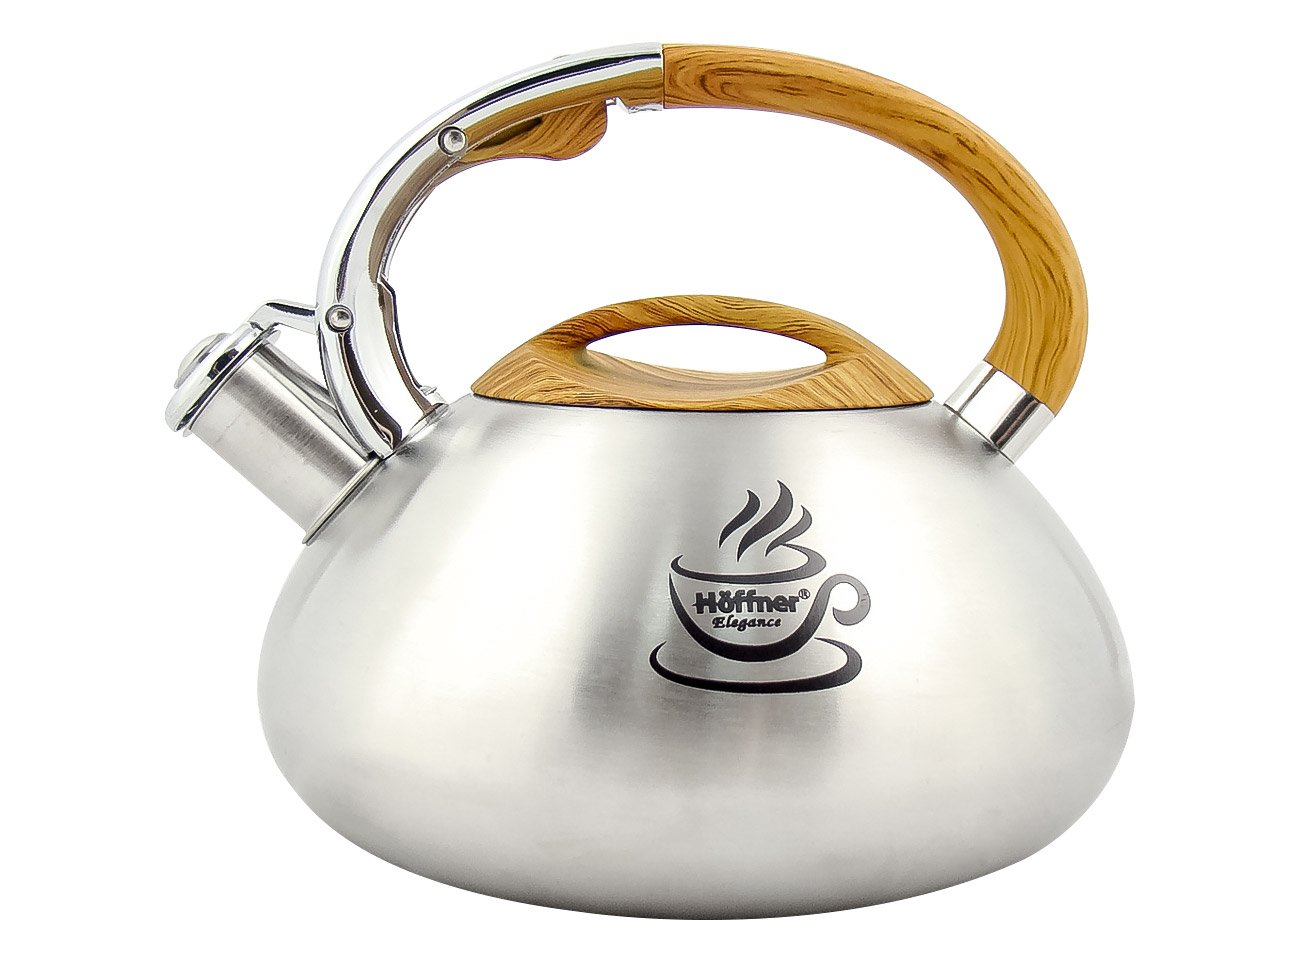 Hoffner Iweks Teapot Kettle With A Whistle Of 3.0 L Magic Logo Attractive And Modern Design